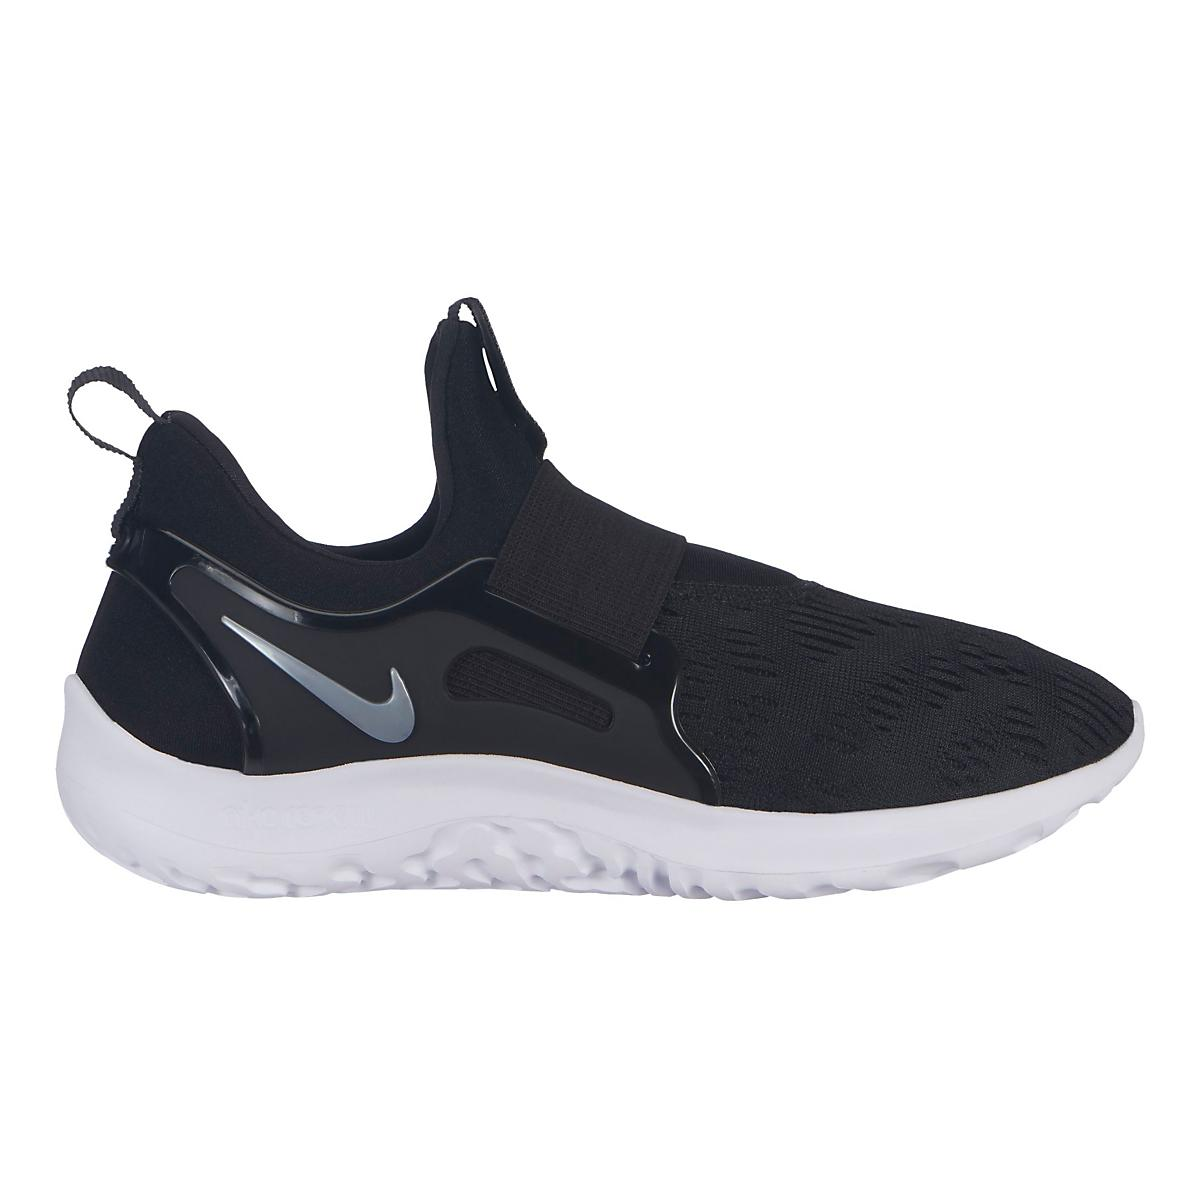 f7f5a89a48c4 ... free shipping womens nike renew freedom running shoe at road runner  sports 5058d c766c